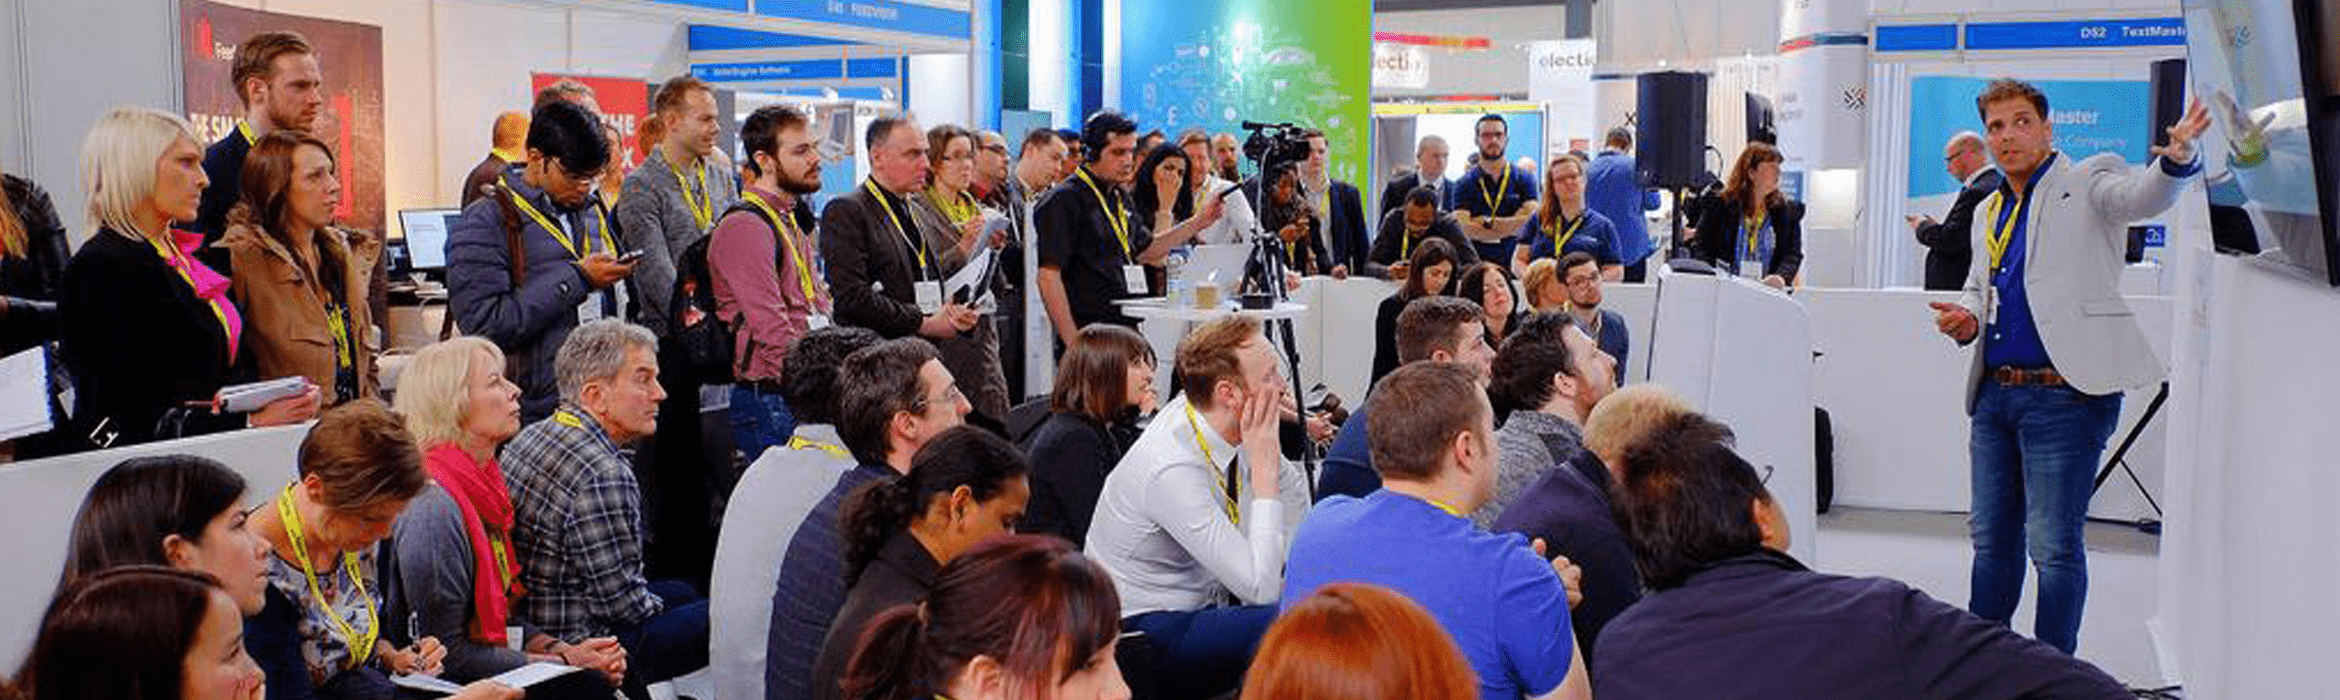 Brother's Guide to Retail Technology Events: Internet Retailing Expo